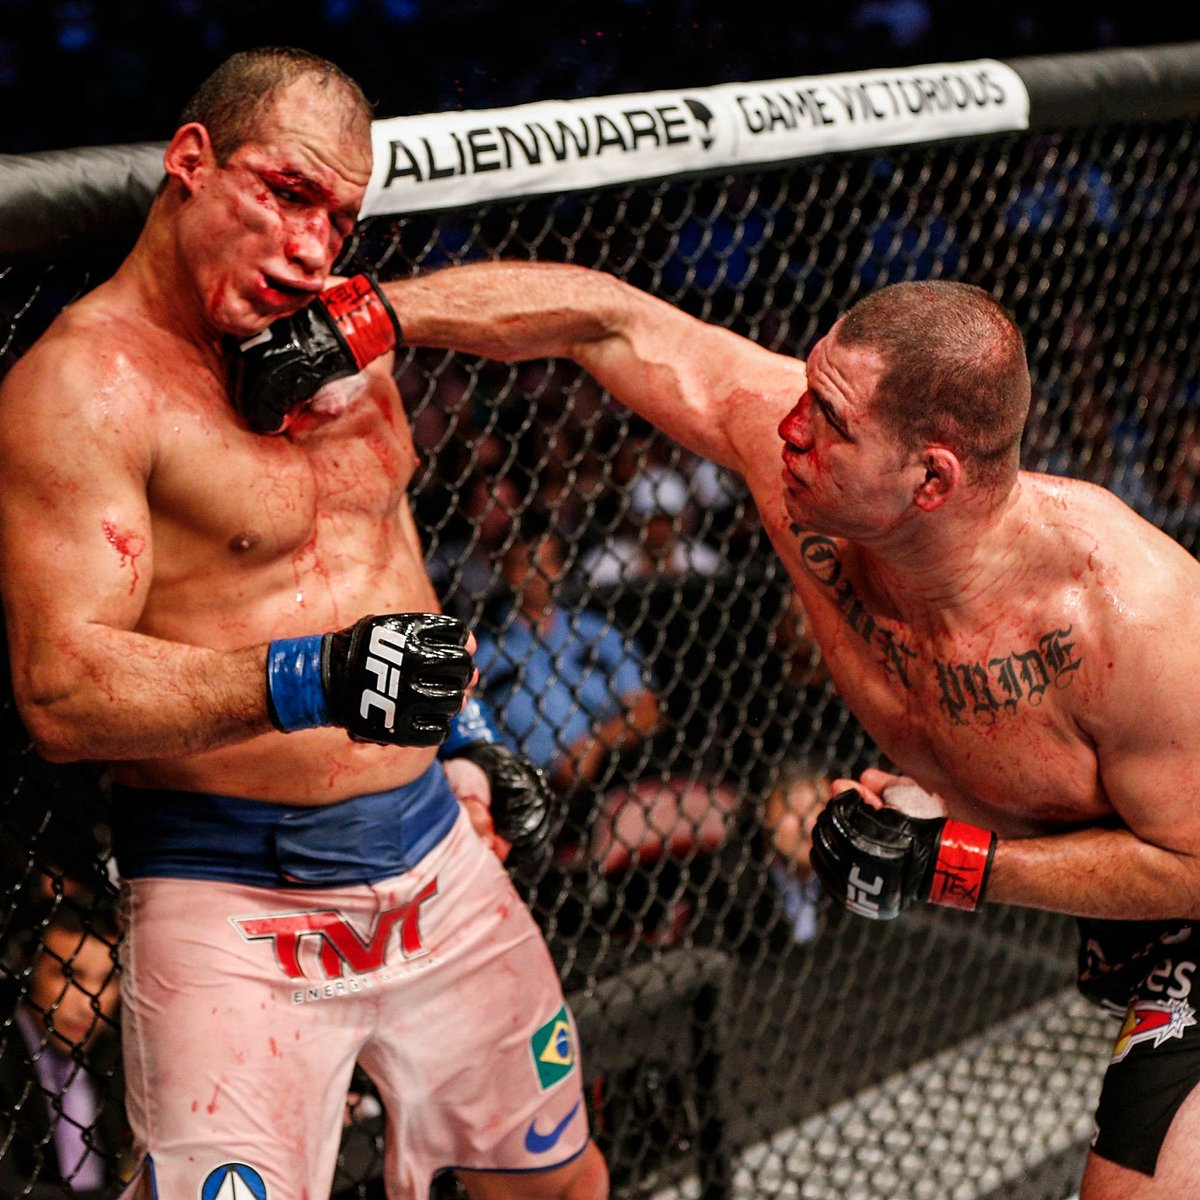 #OnThisDay in 2013... @CainMMA closed out his trilogy with JDS with THIS impressive showing!